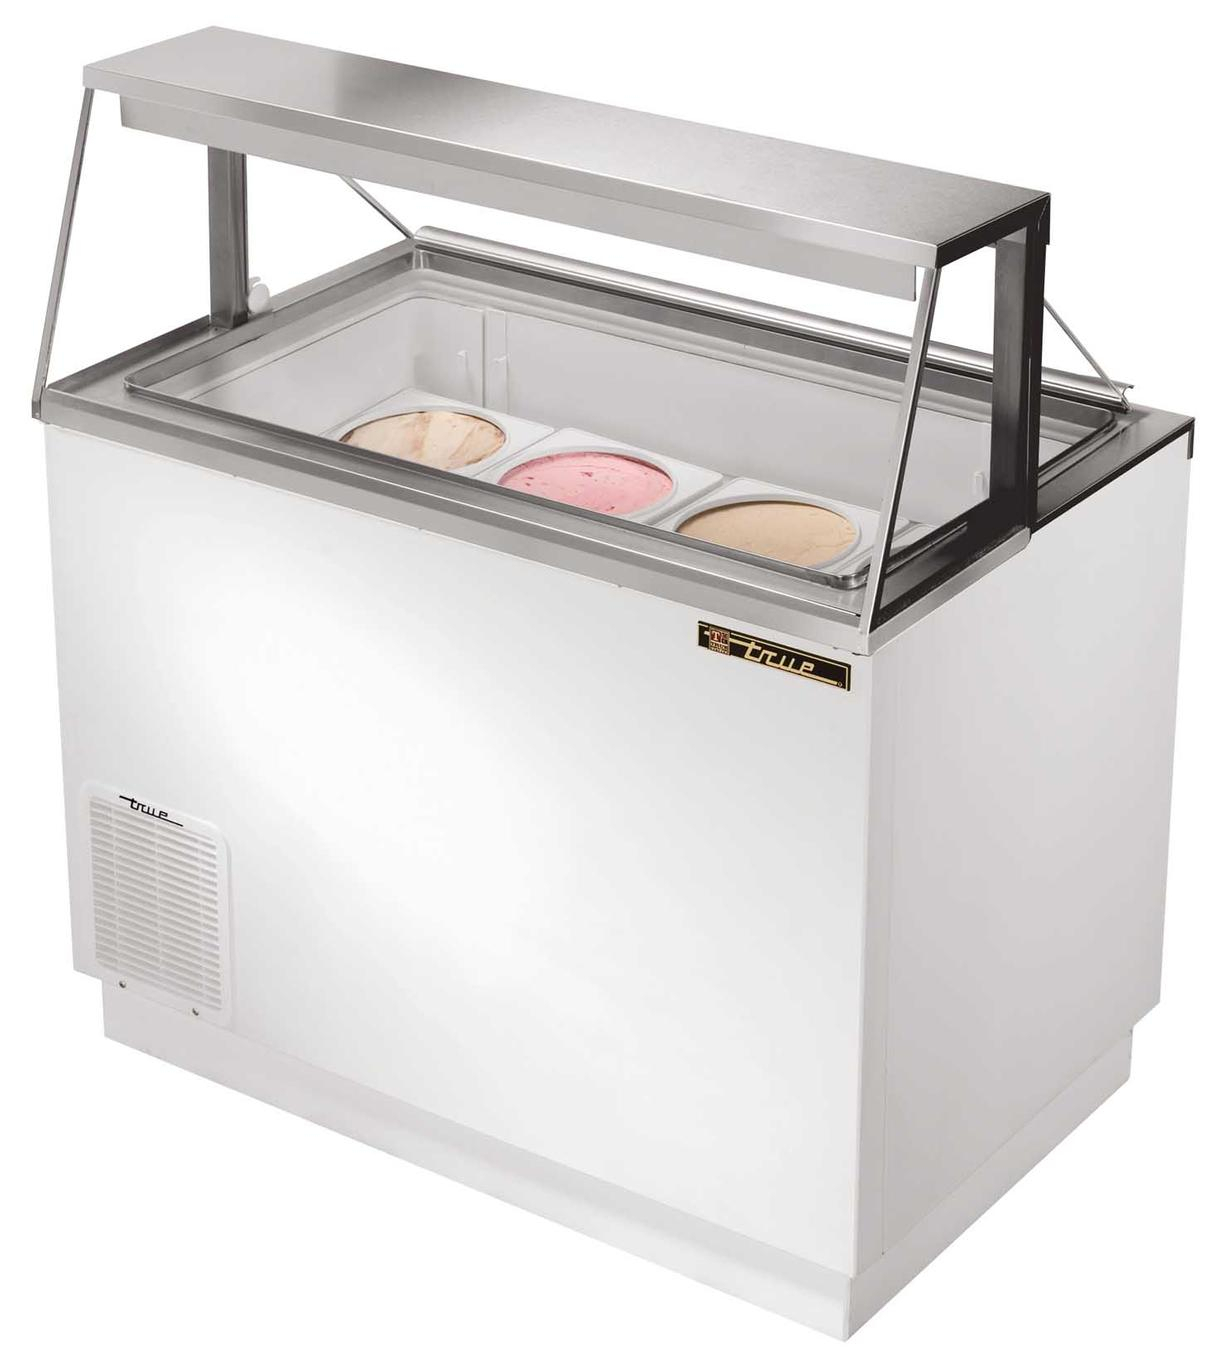 True Tdc 47 8 Flavor Ice Cream Dipping Cabinet Holds 12 Cans Sub pertaining to size 1226 X 1366